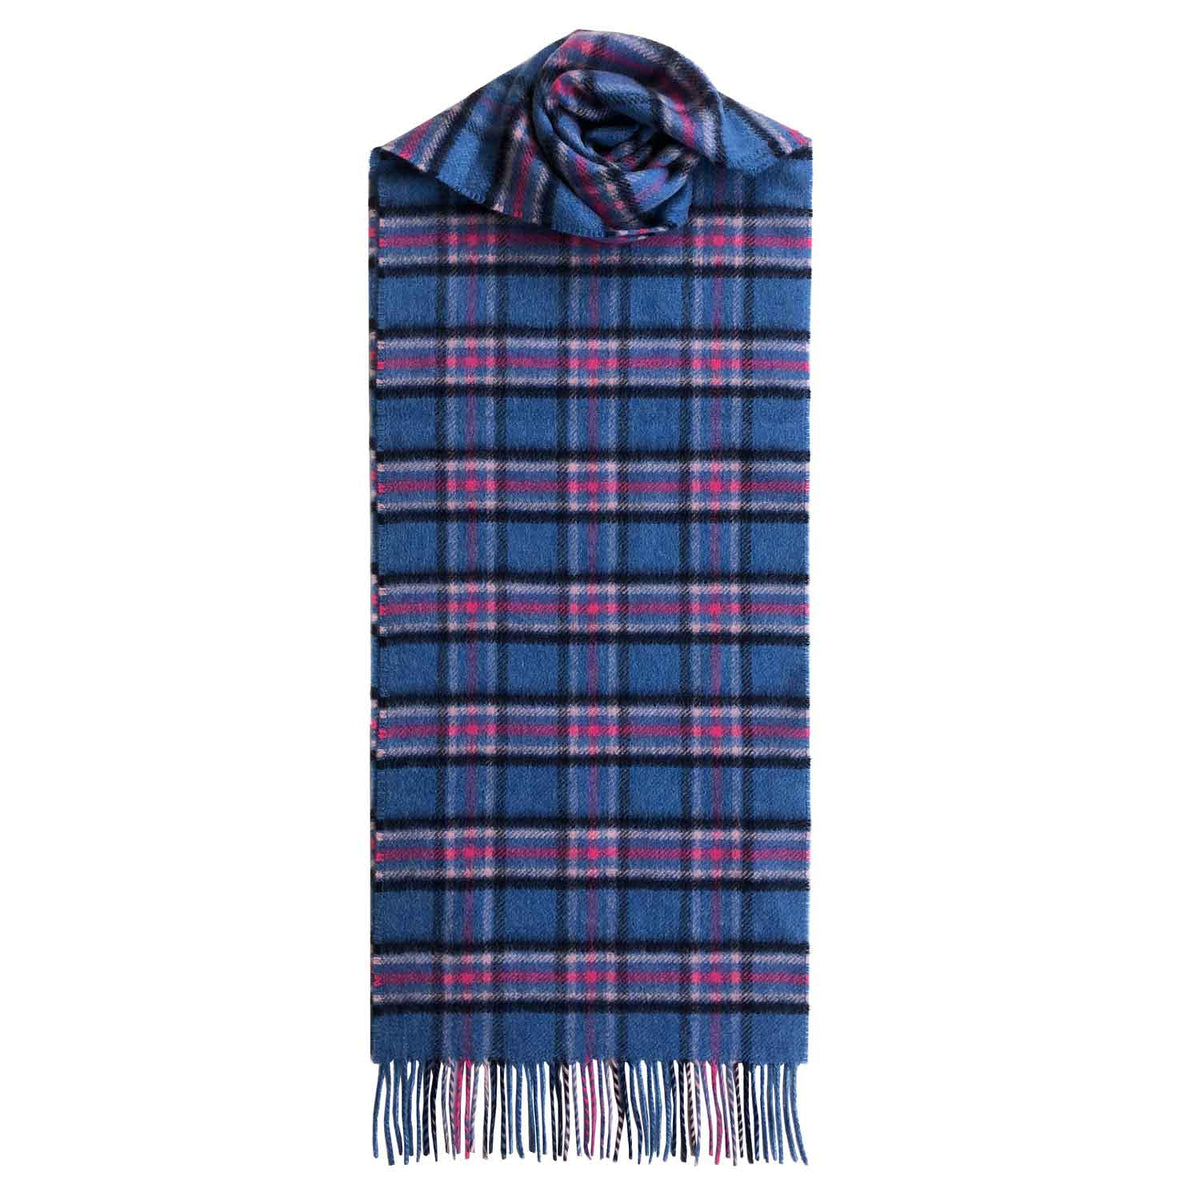 Lomond Cashmere | Blue Pink | Check Cashmere Scarf With Fringes | Made in Scotland | Shop at The Cashmere Choice | London